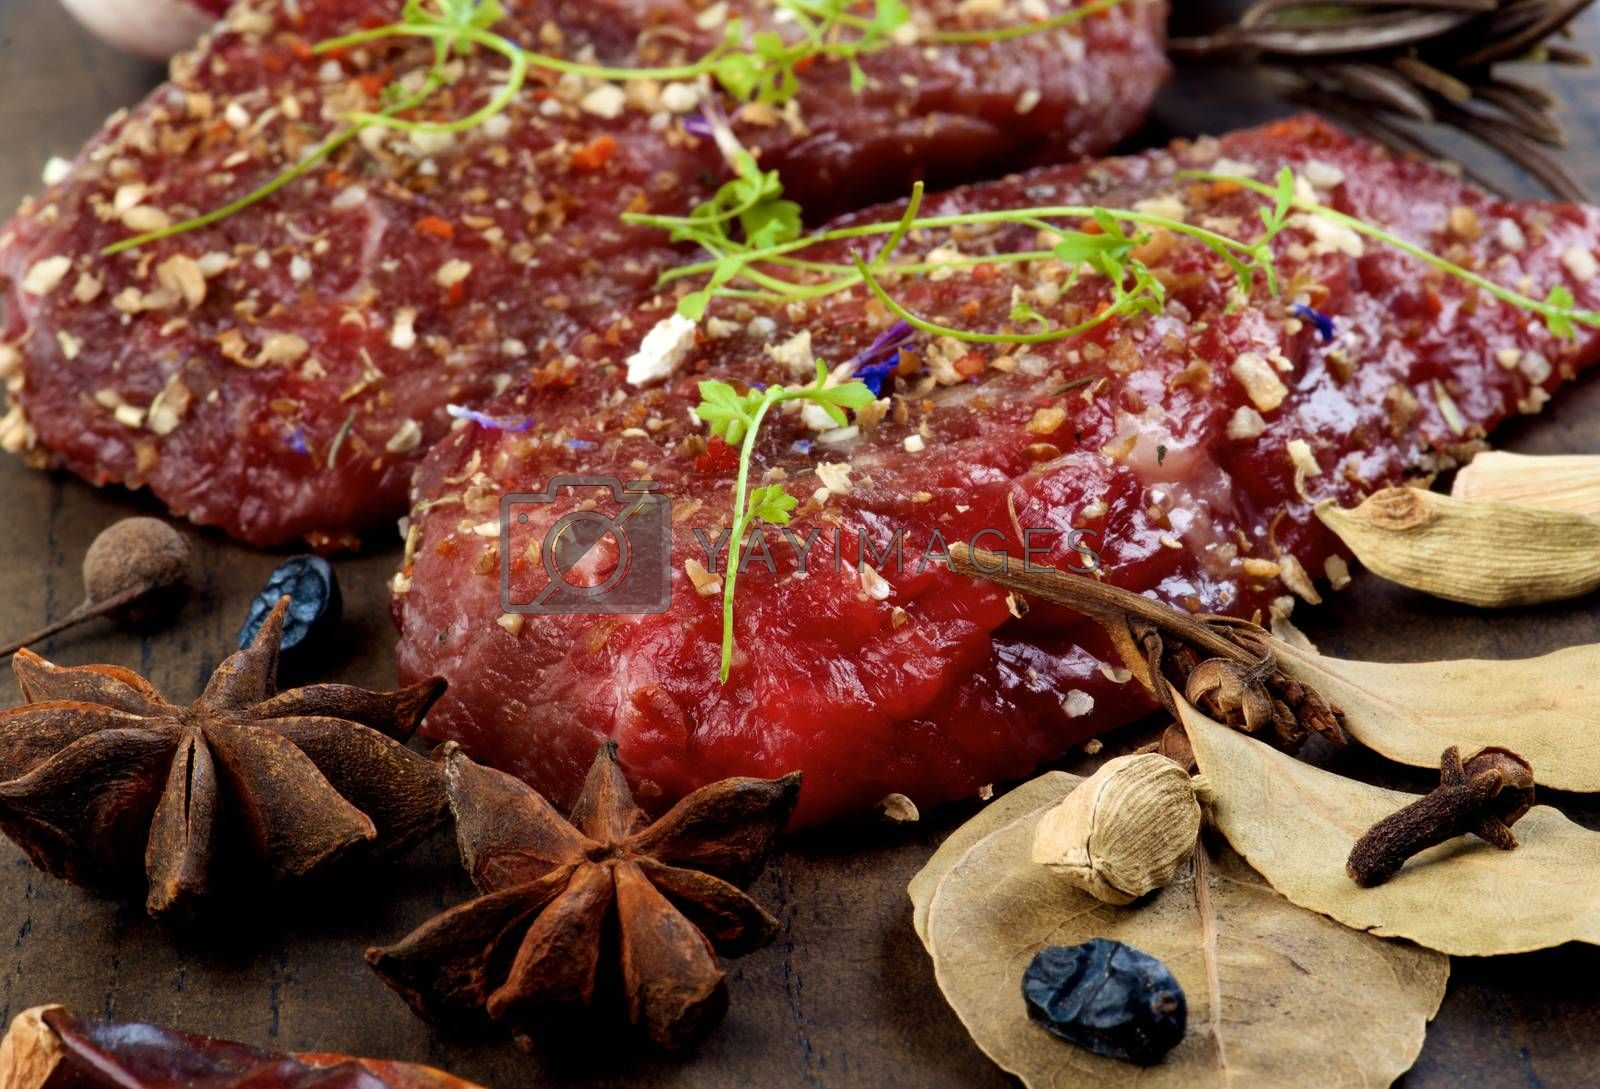 Two Marinated Raw Boneless Beef Steaks with Herbs and Spices, Garlic and Chili Pepper closeup on Wooden Cutting Board. Focus on Foreground